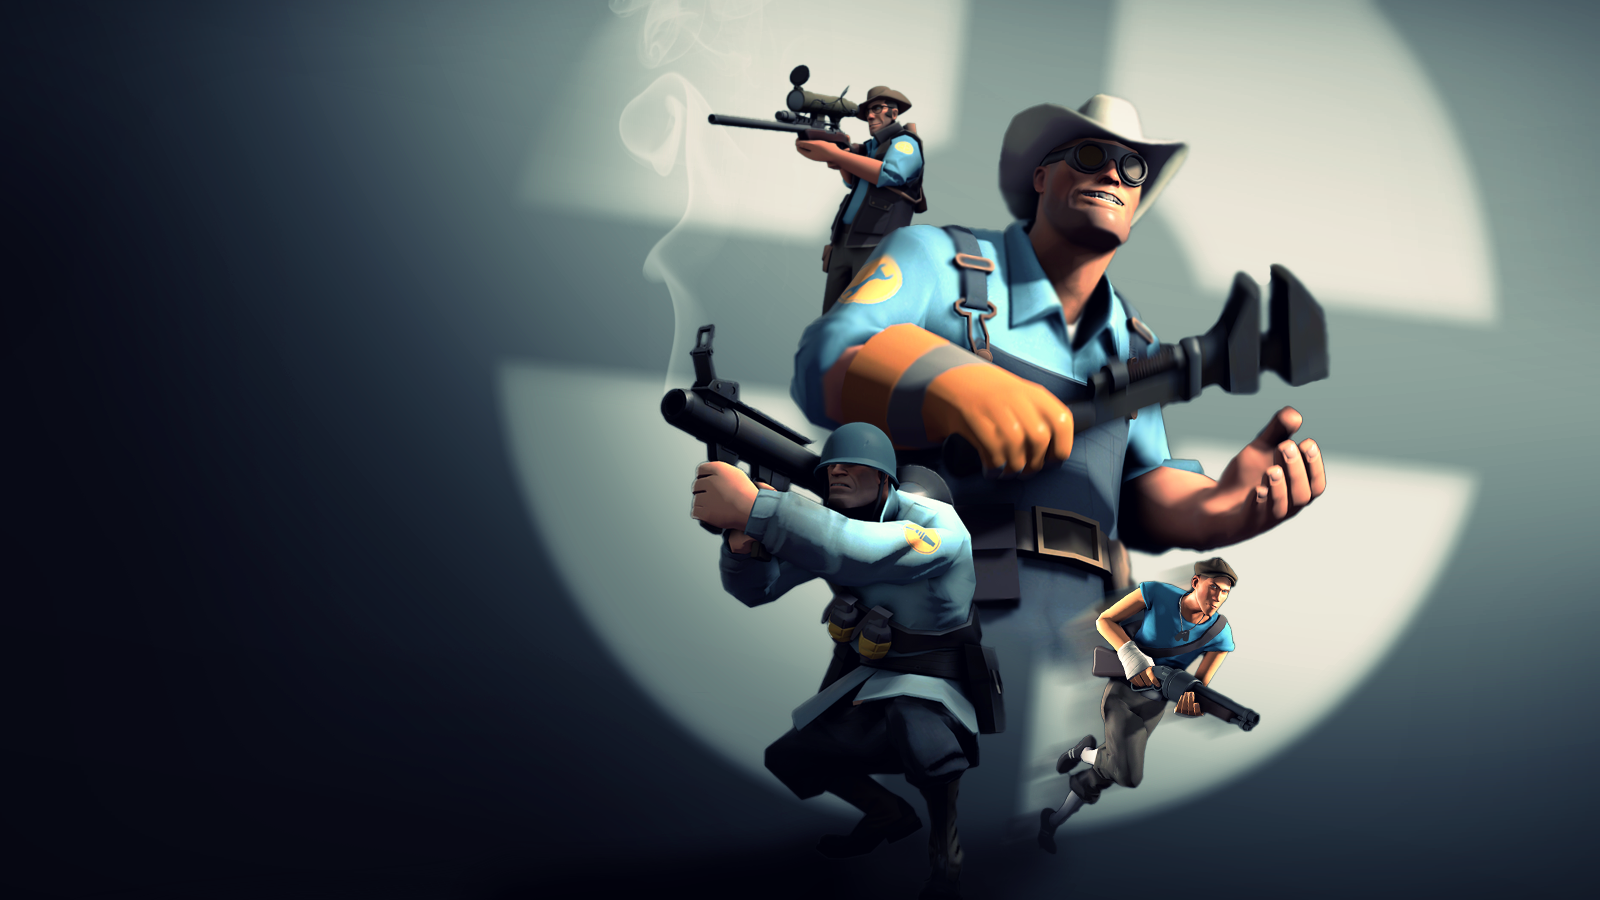 tf2 wallpaper bing images